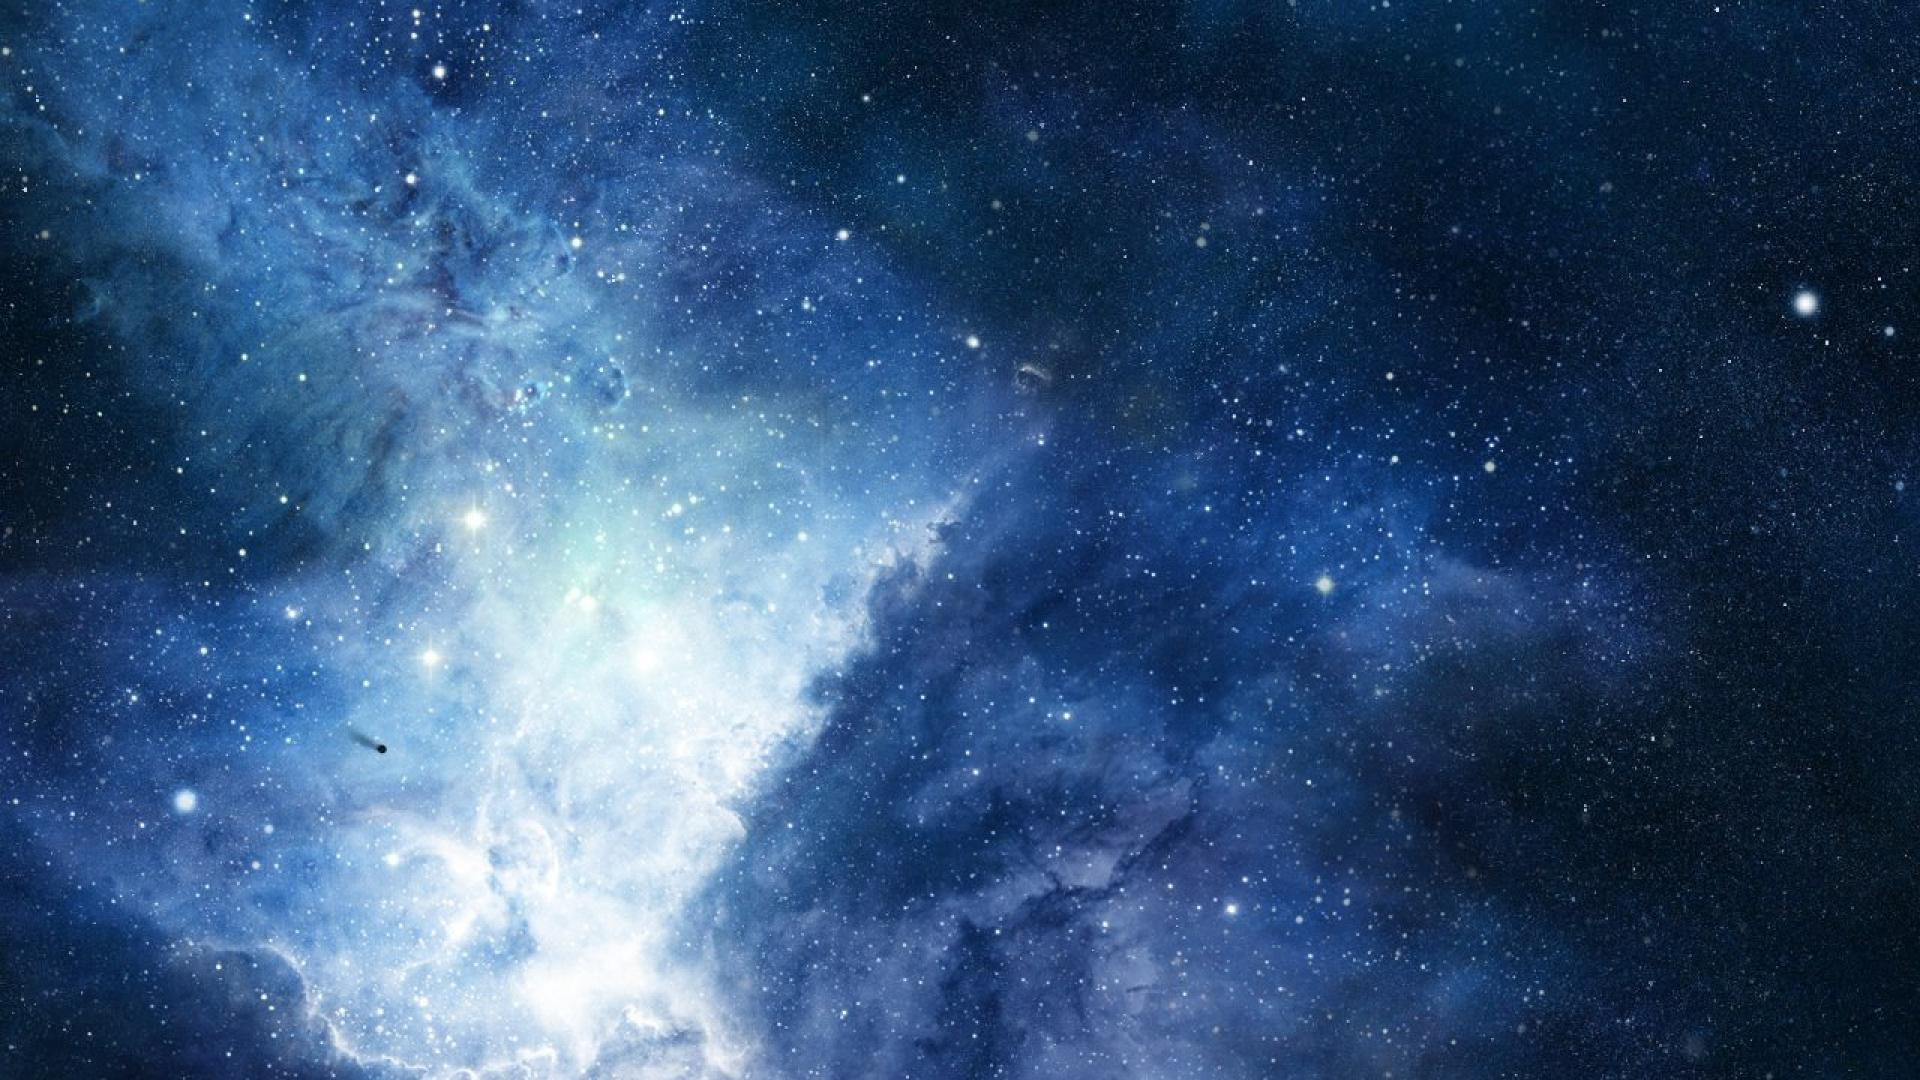 Stars Wallpaper HD - WallpaperSafari